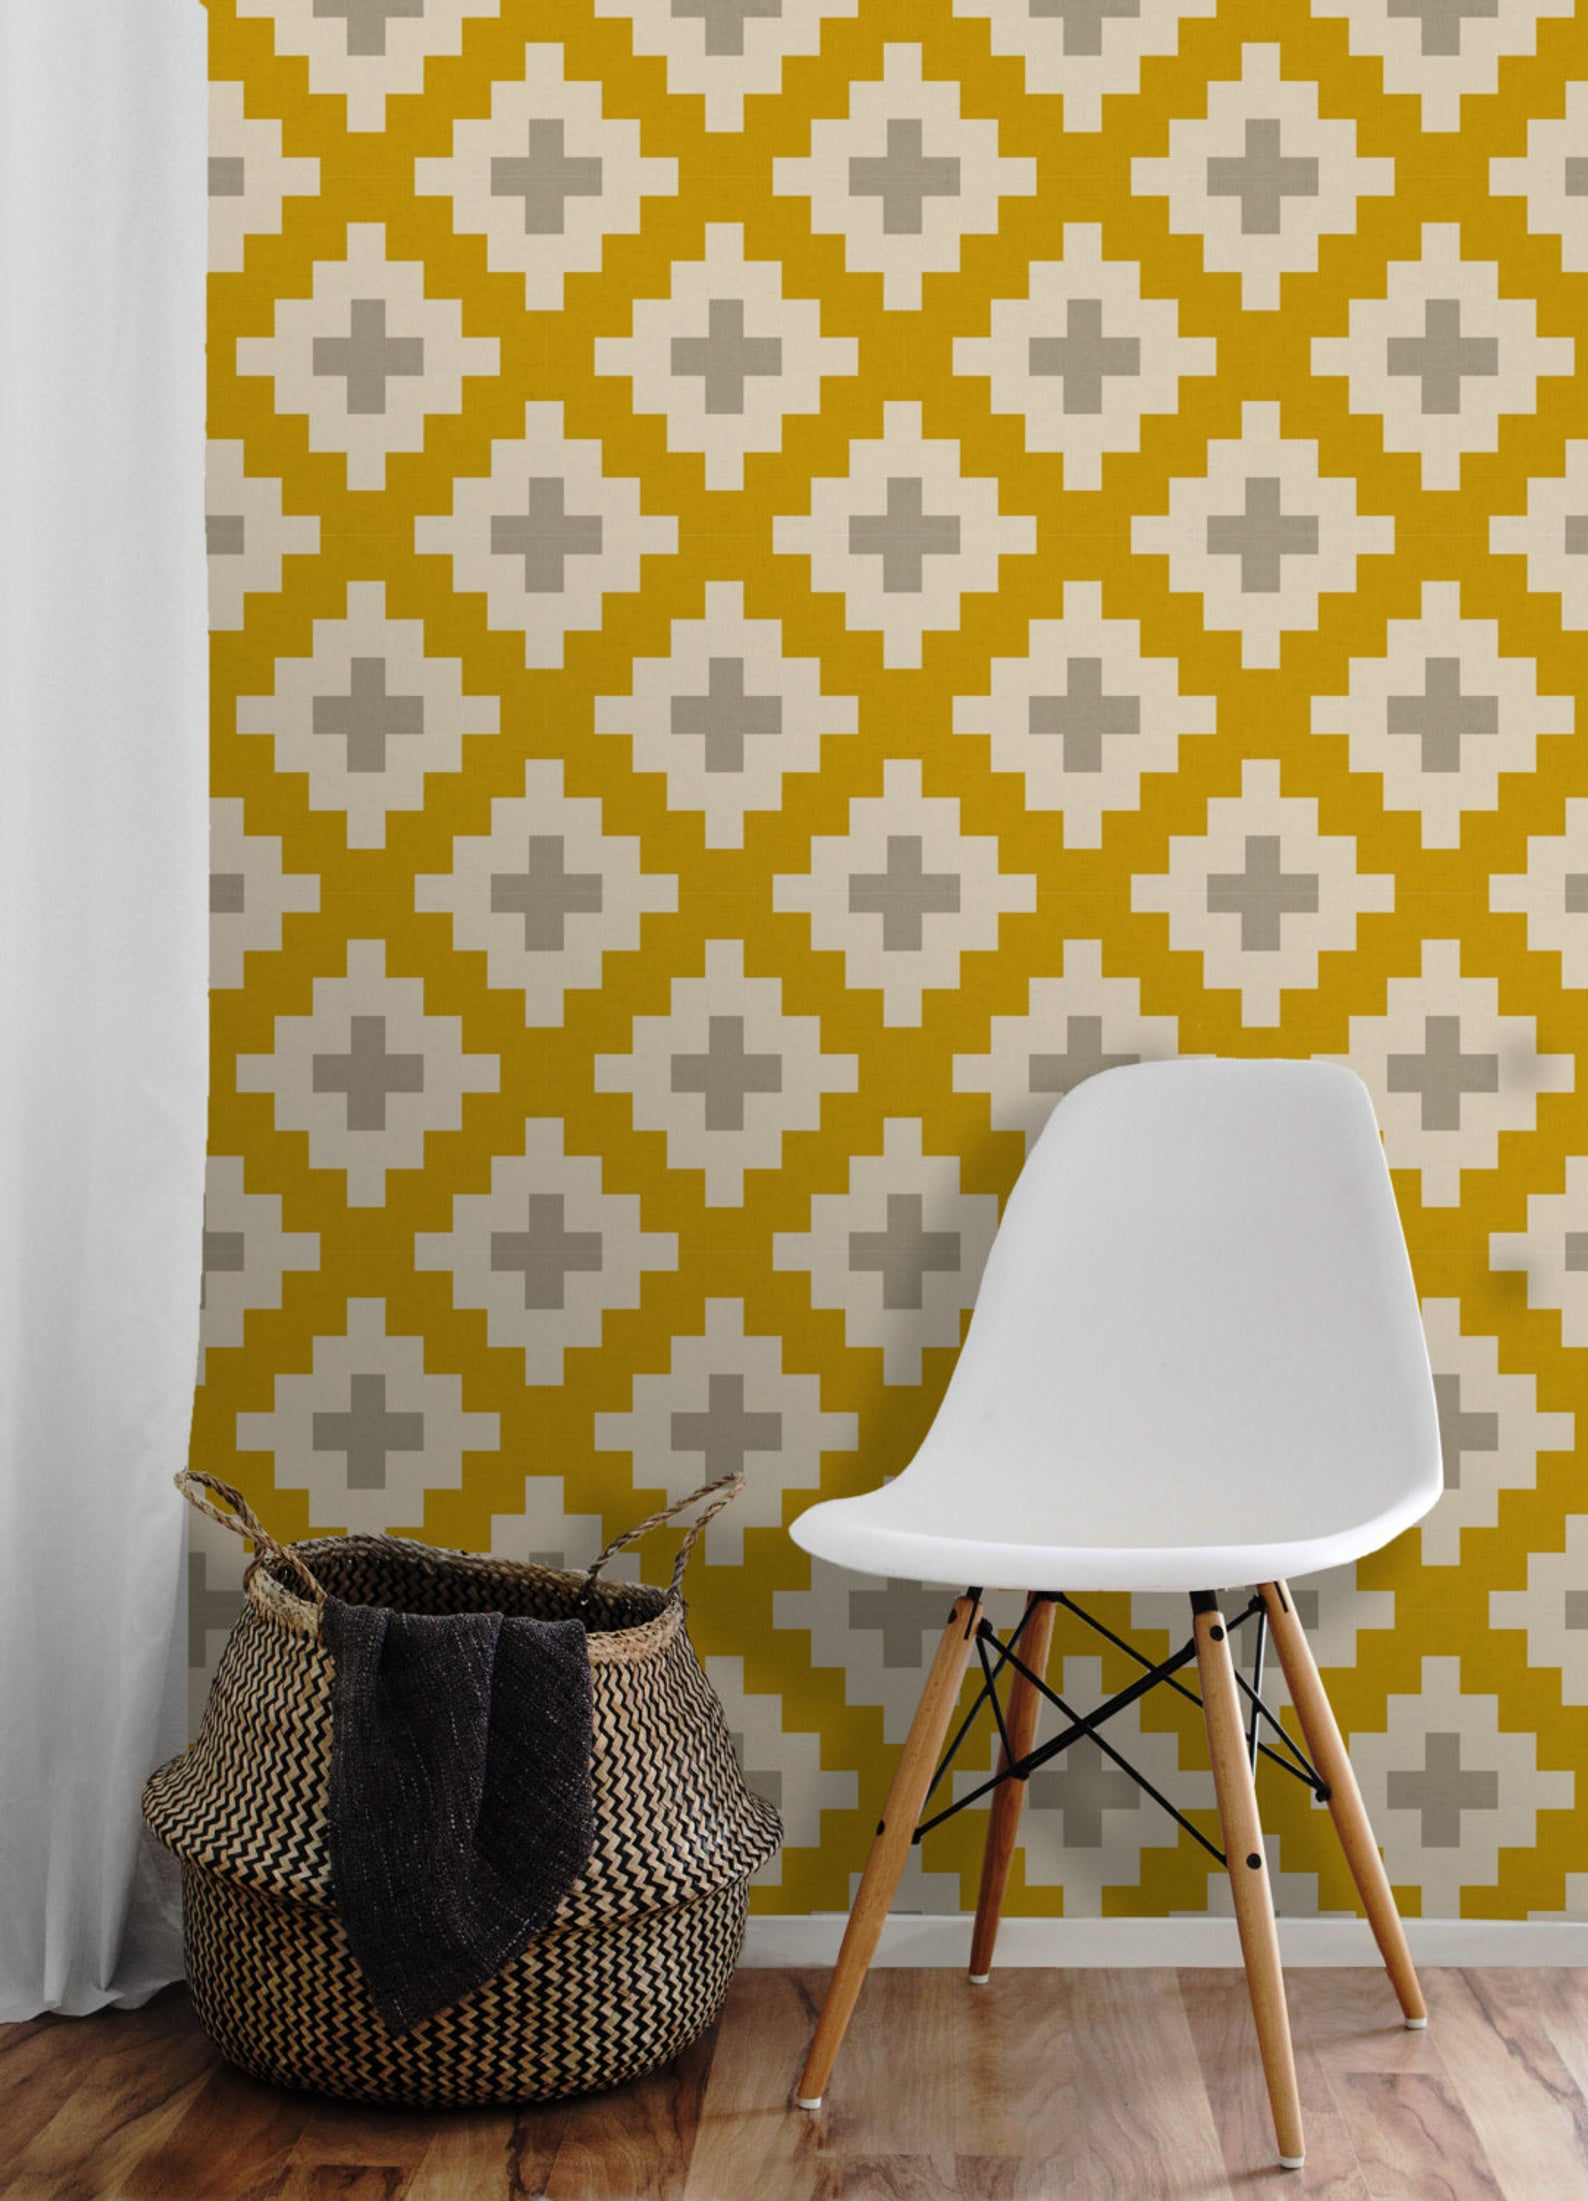 Southwest Gold And Gray Easy To Apply Removable Peel Etsy Peel N Stick Wallpaper Southwest White Quilt